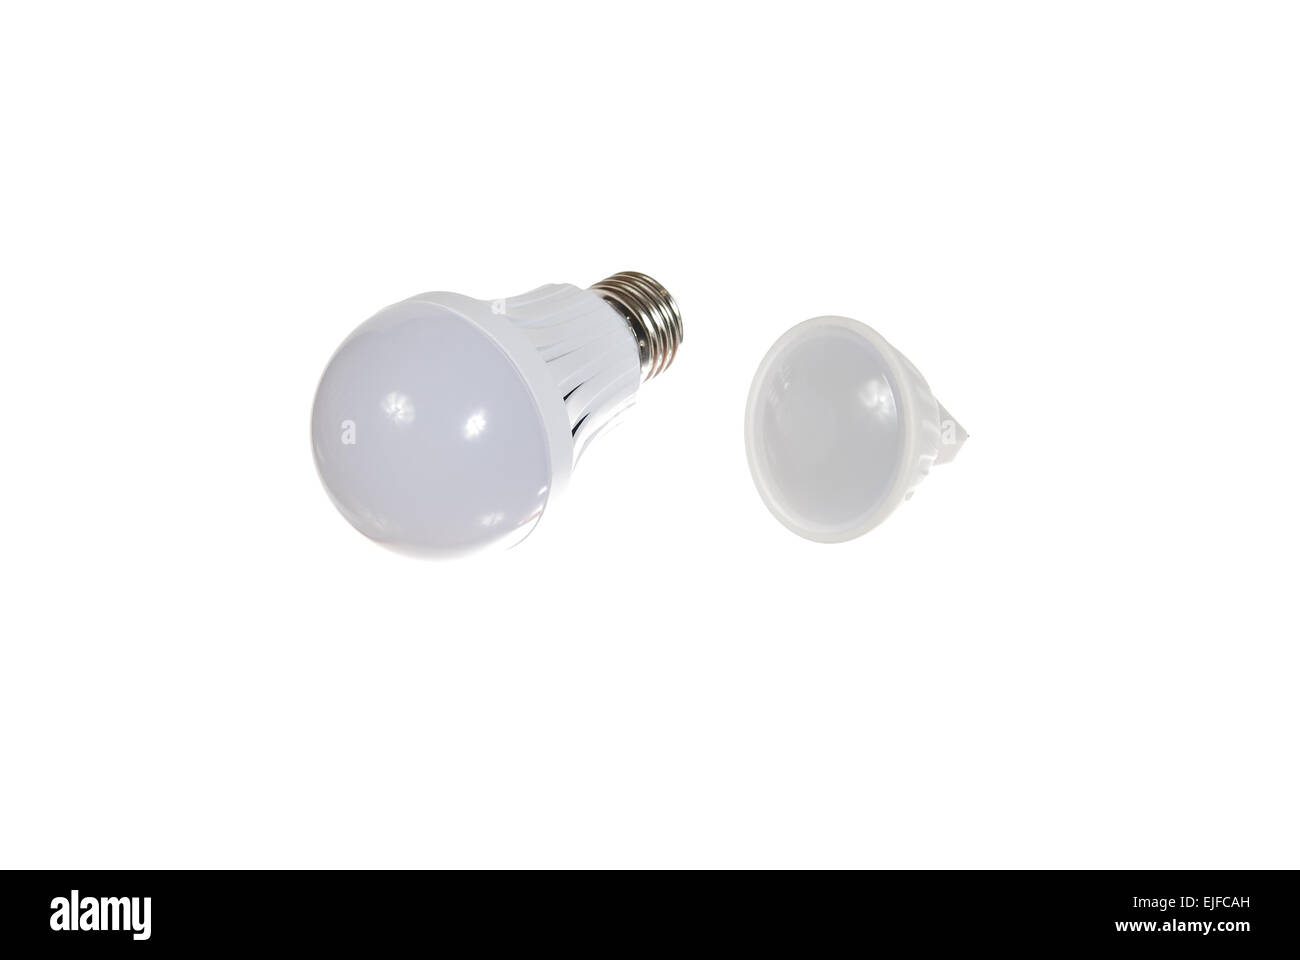 Led lamps are isolated on the white background - Stock Image